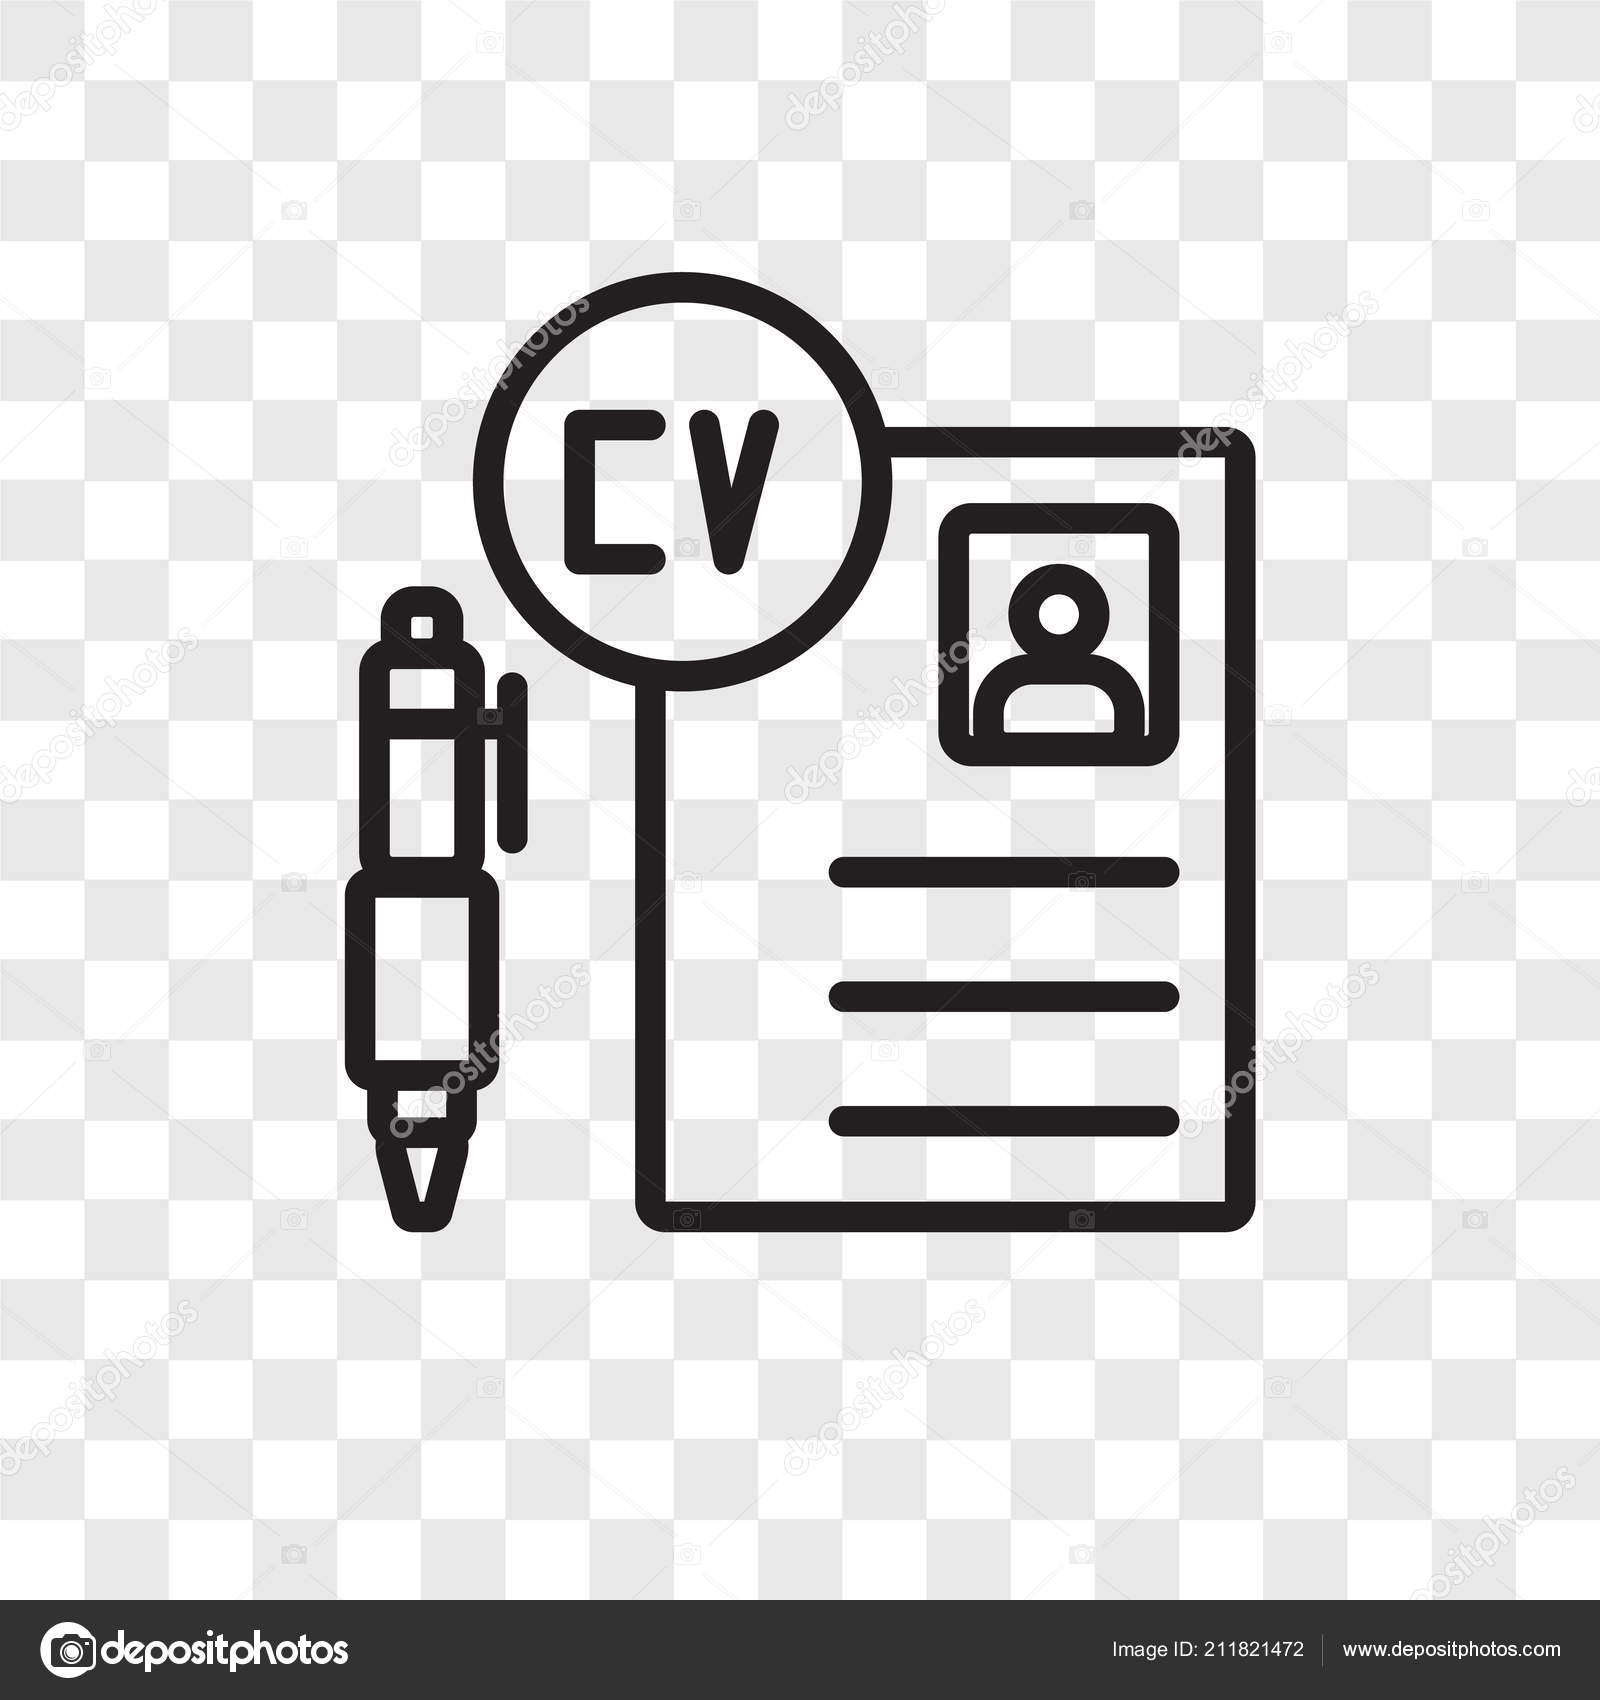 Curriculum Vitae Vector Icon Isolated On Transparent